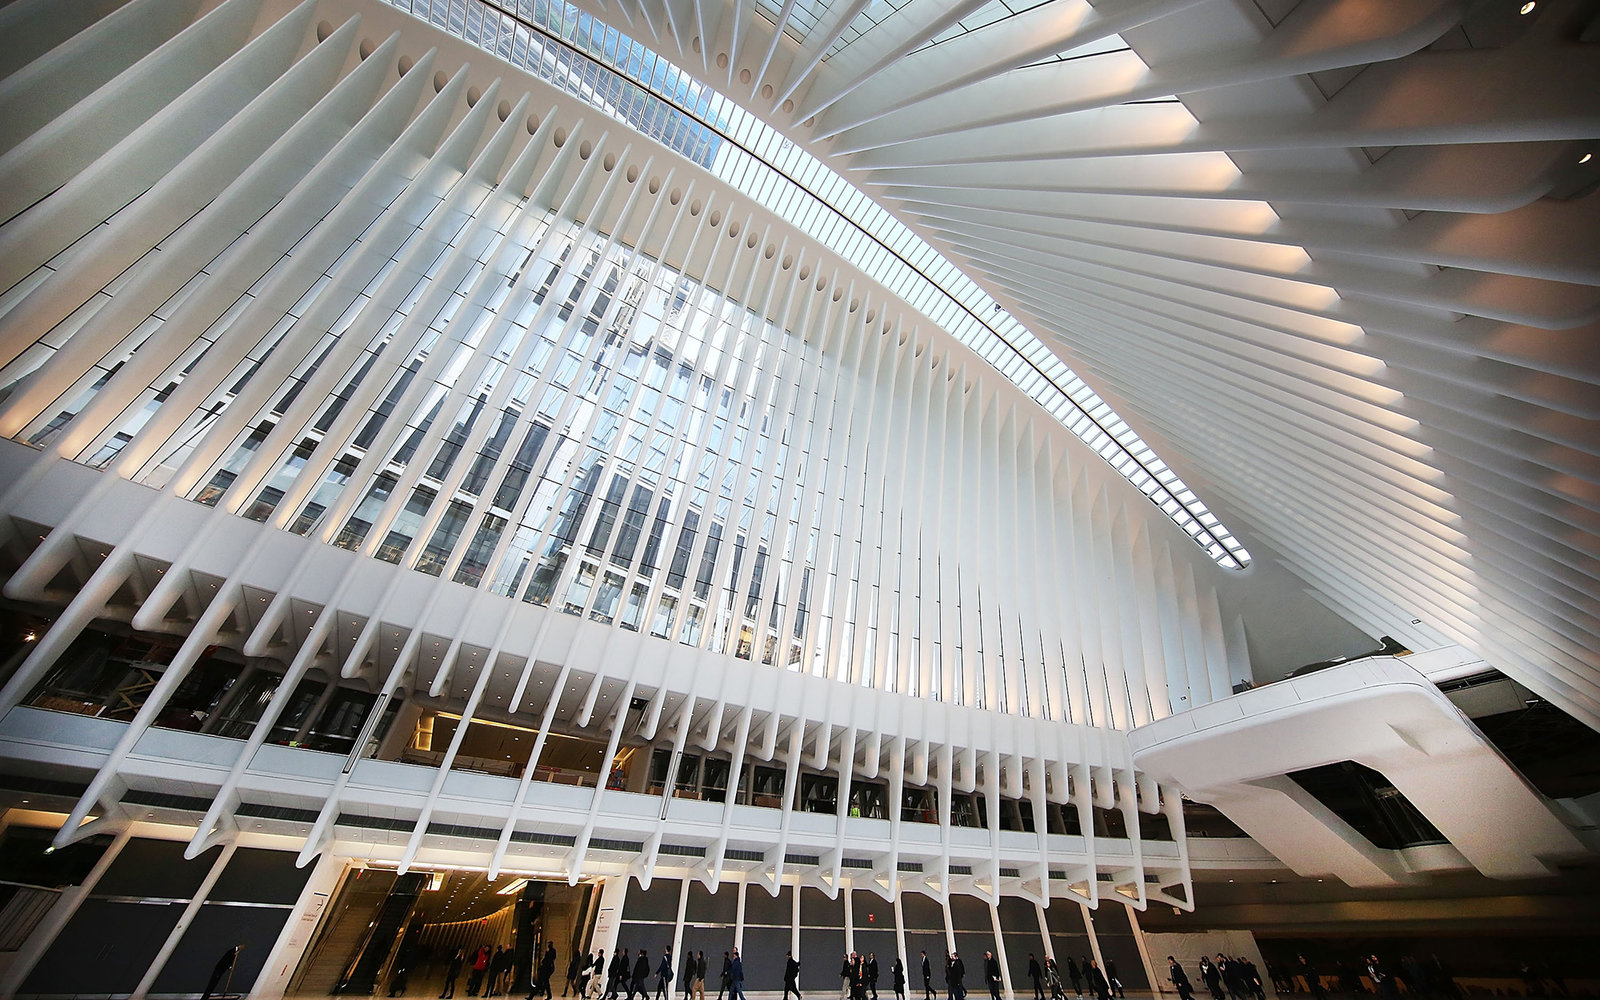 NEW YORK, NY - MARCH 07:  Commuters walk through the Oculus of the partially opened World Trade Center Transportation Hub after nearly 12 years of construction on March 7, 2016 in New York City. The grand structure was designed by Spanish architect Santia